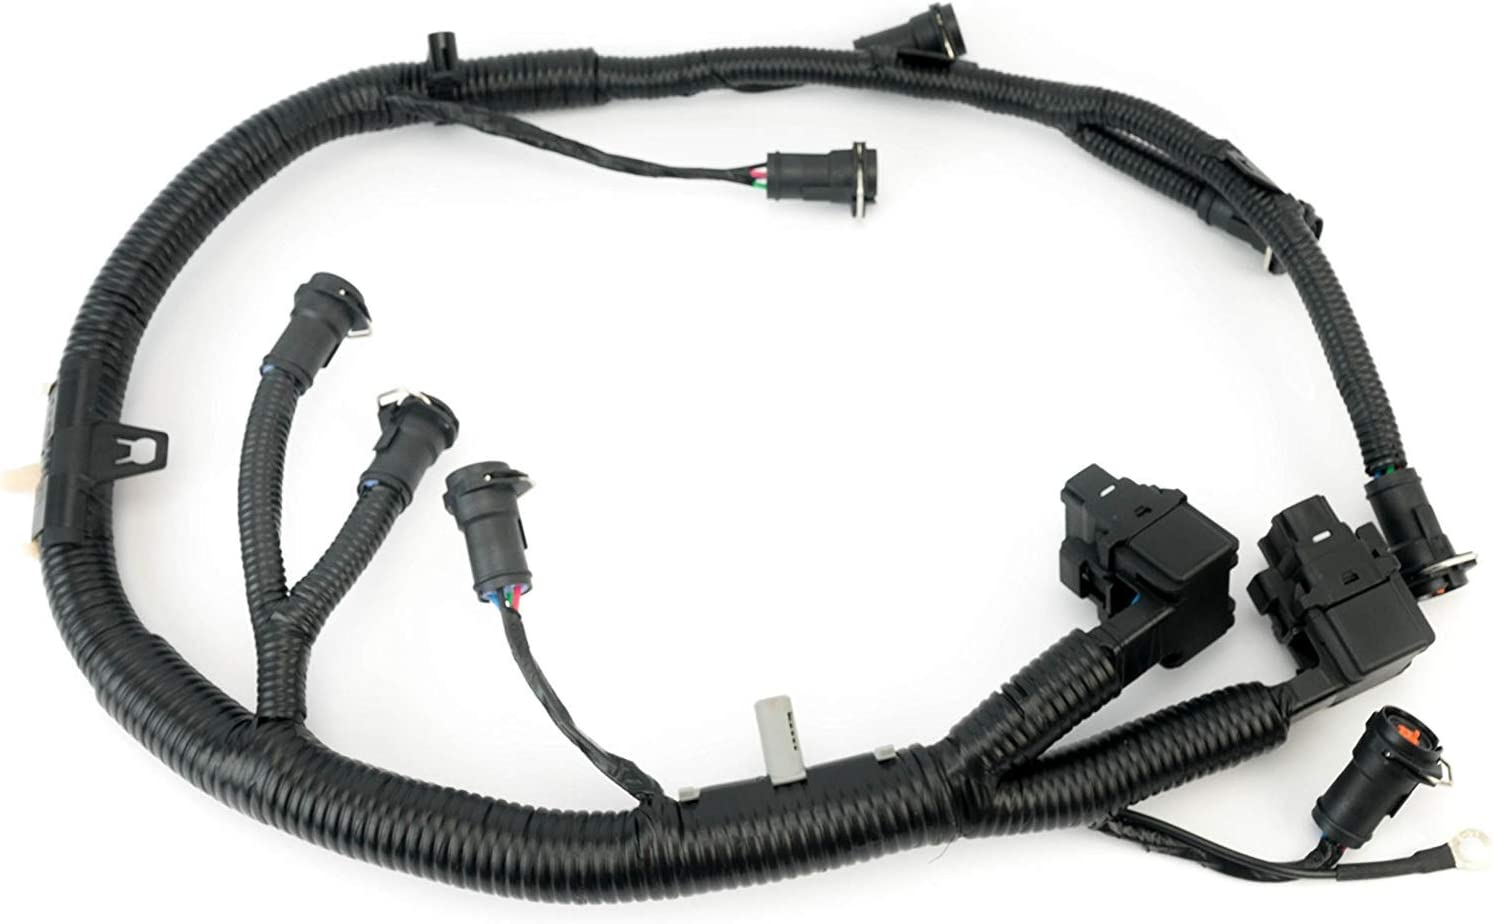 ficm engine fuel injector complete wire harness - replaces part 5c3z9d930a  - fits ford powerstroke 6.0l diesel - 2003, 2004, 2005, 2006, 2007 f250  f350 f450 f550 2004-2005 ford excursion : automotive - amazon.com  amazon.com